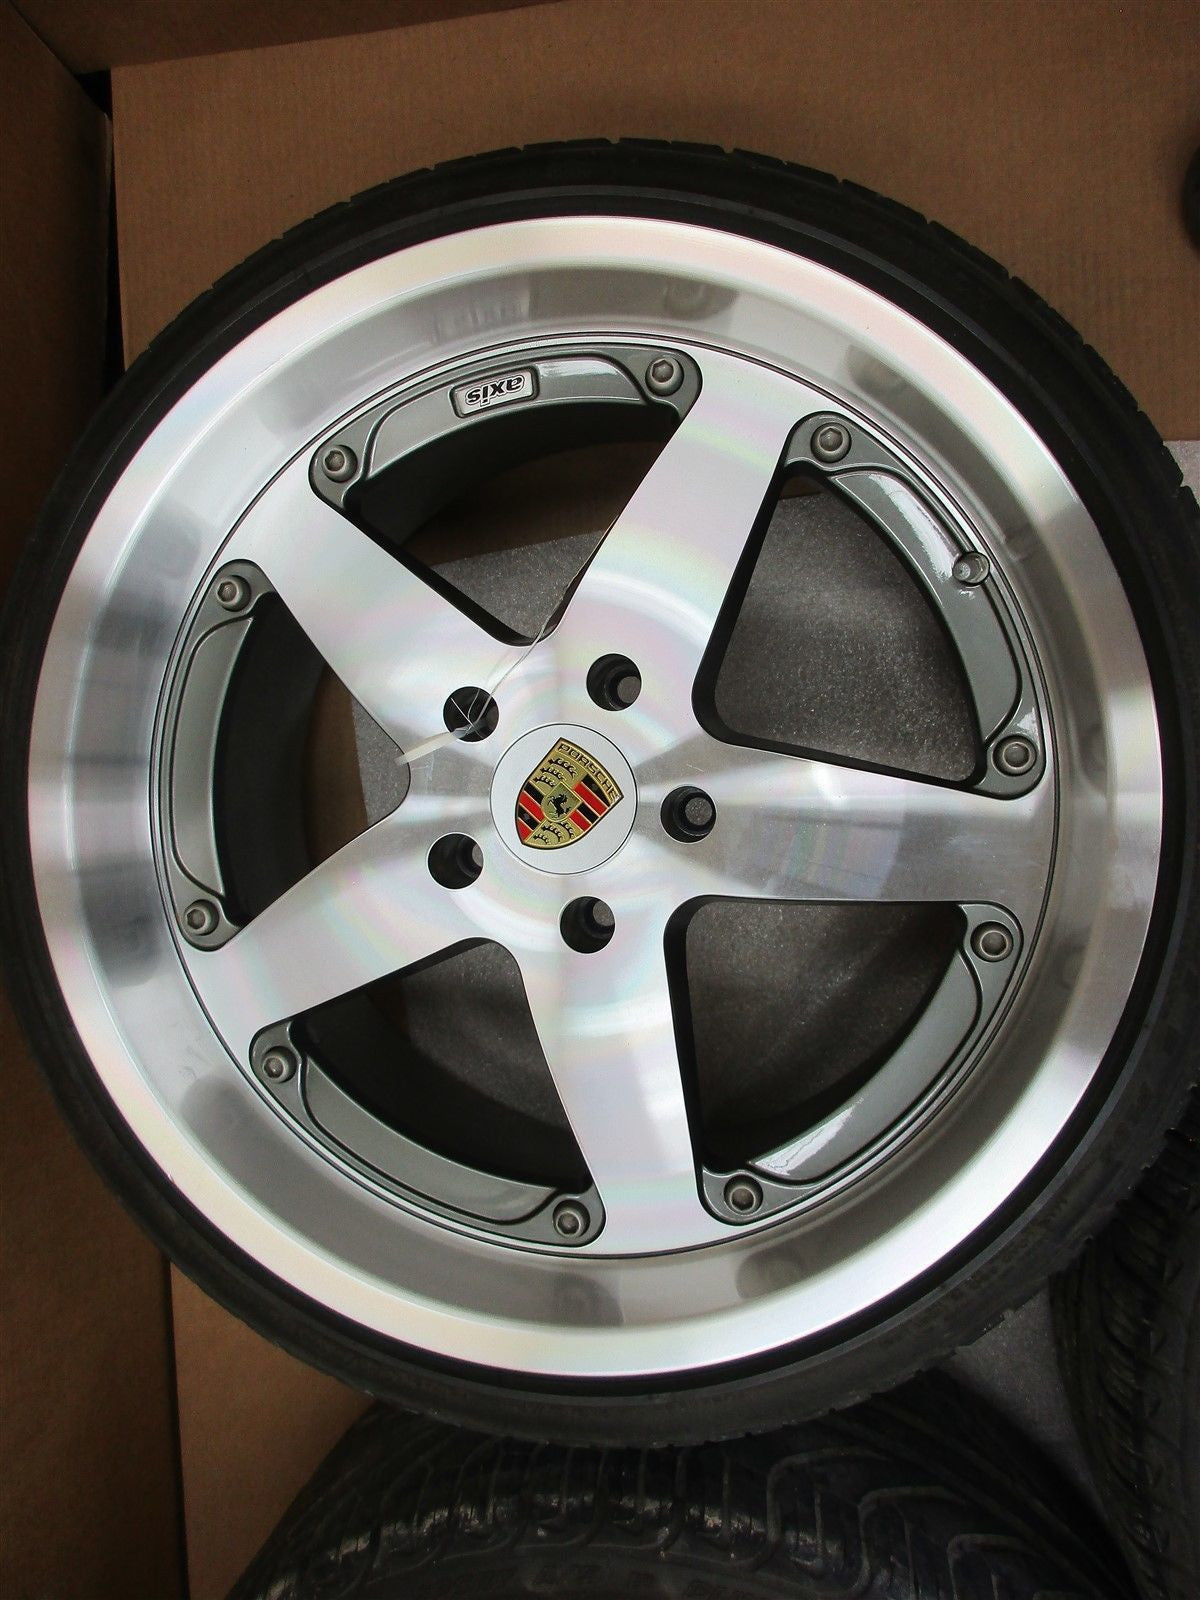 "07 Cayman S Porsche 987 AFTERMARKET AXIS L LEFT R RIGHT RIMS WHEELS 3 20"" 37,499"